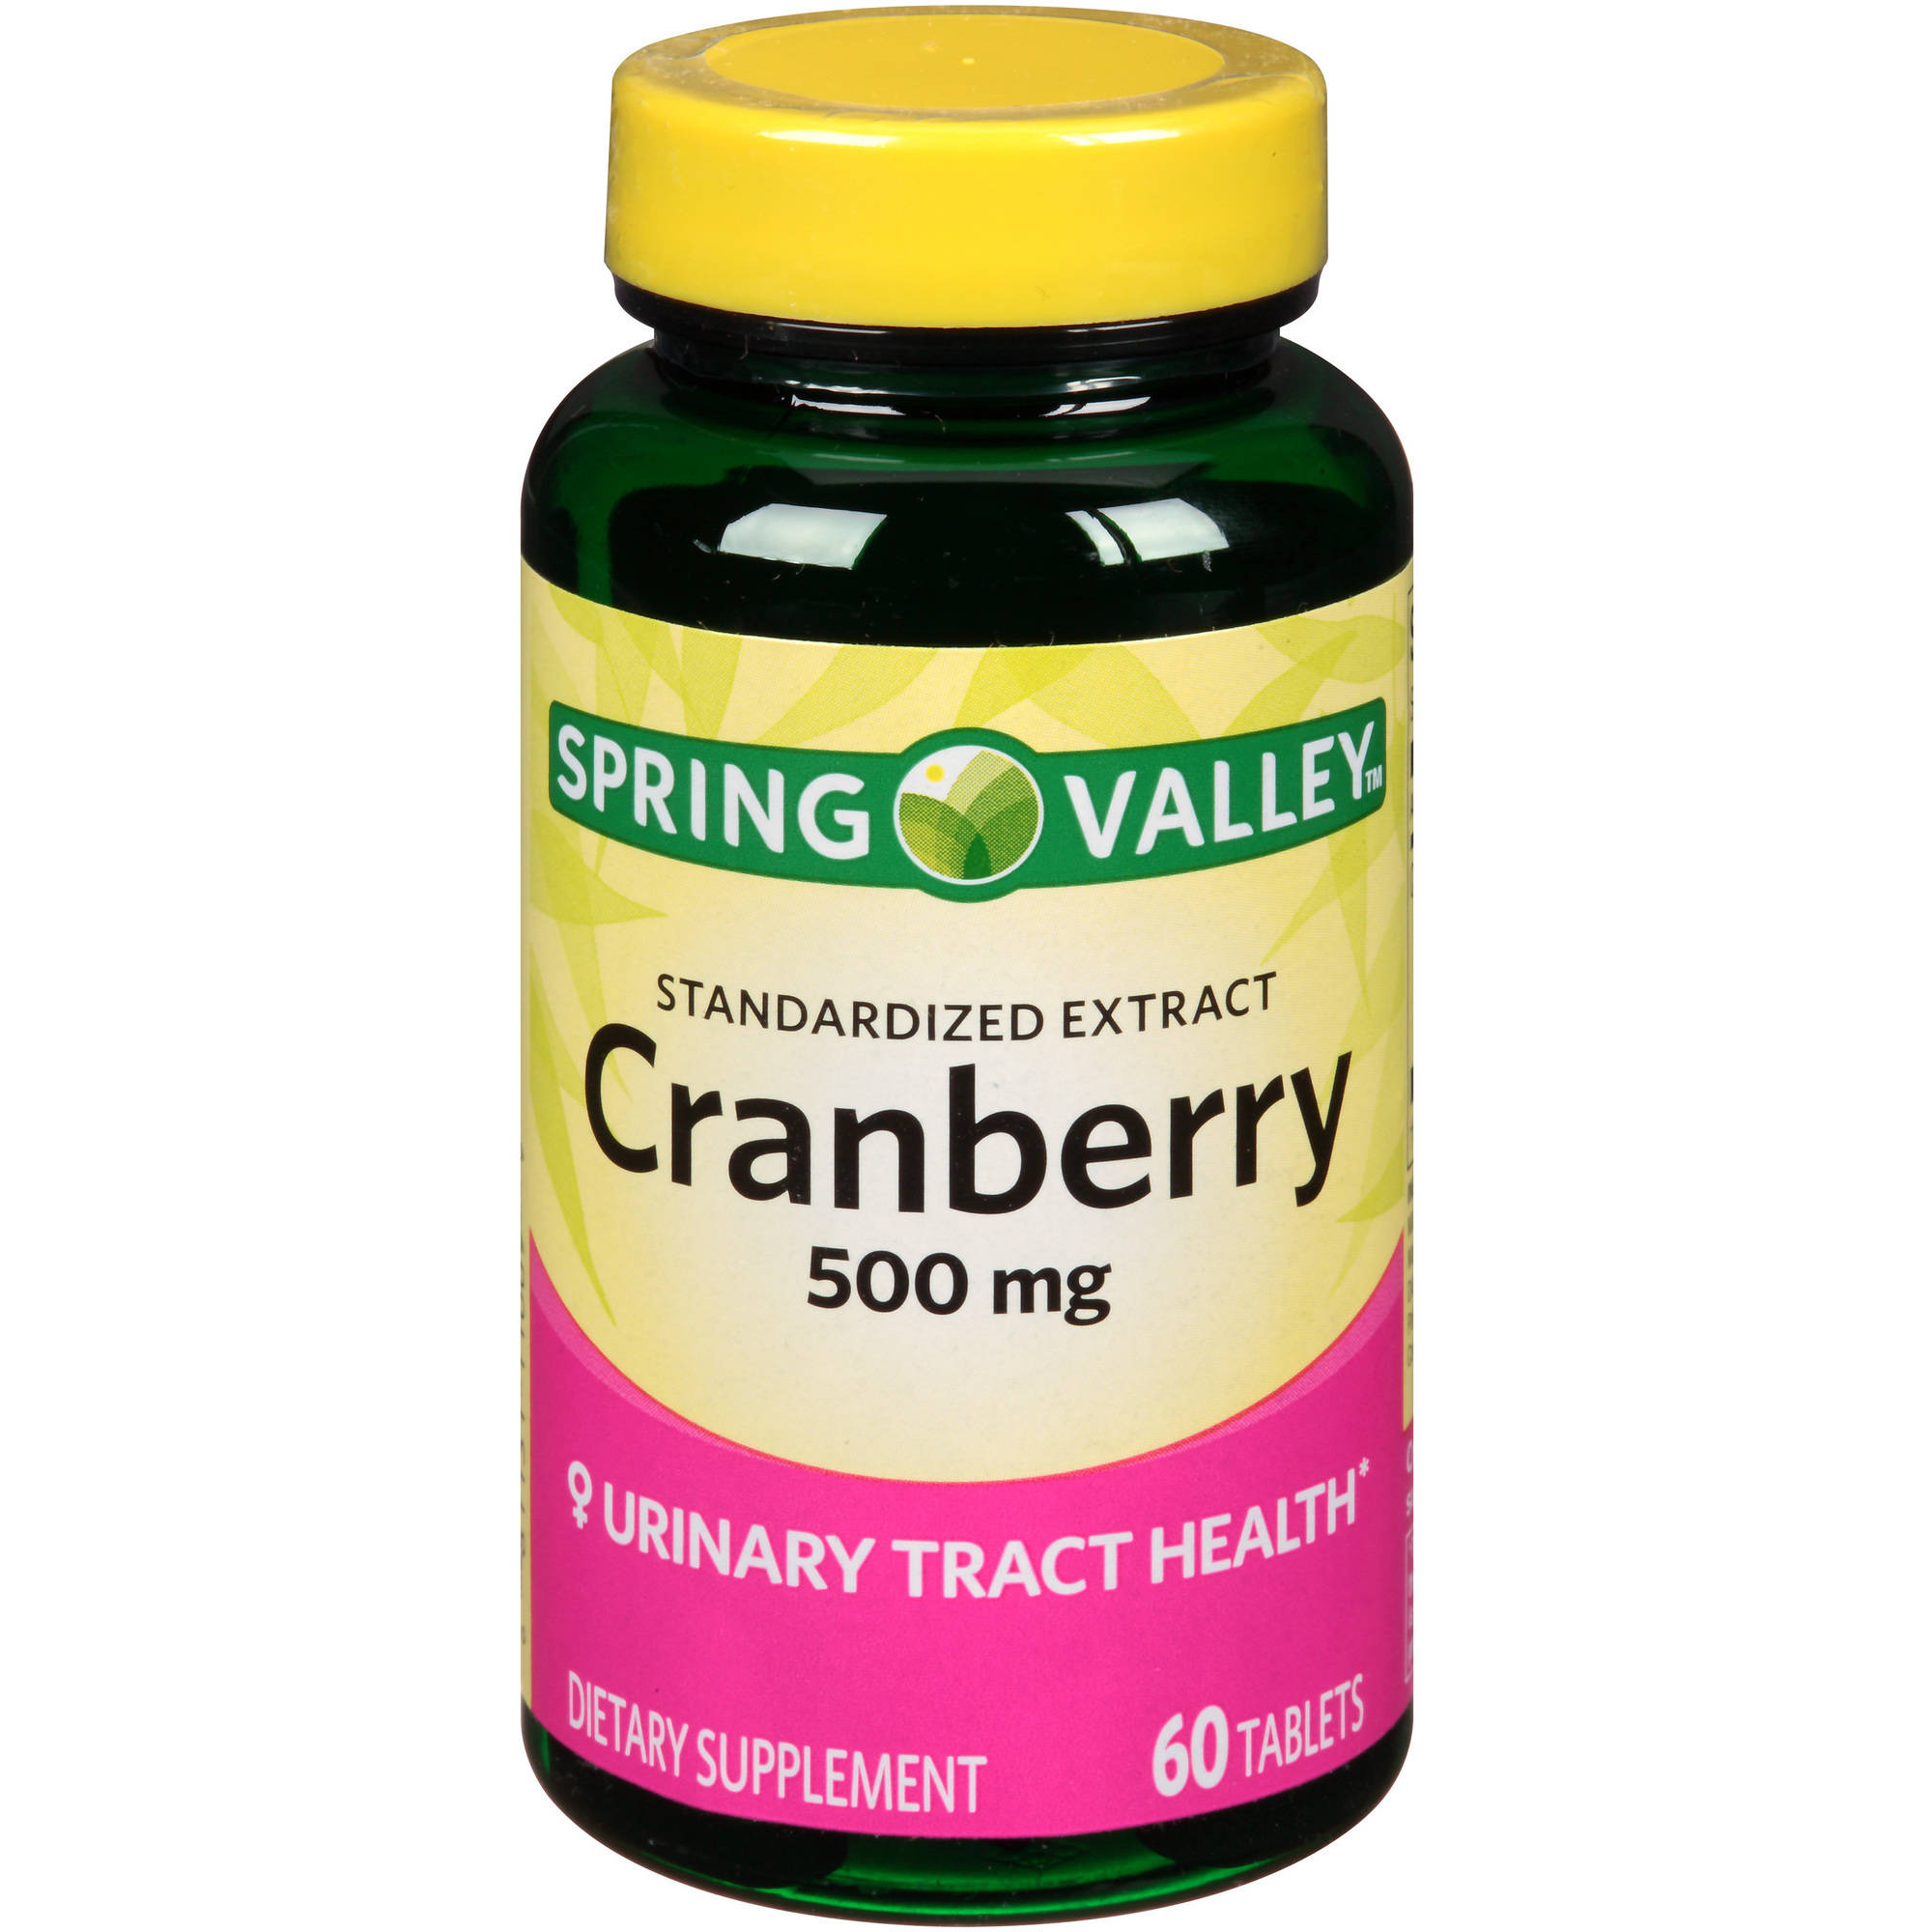 Spring Valley Standardized Extract Cranberry Dietary Supplement, 500 mg, 60 count